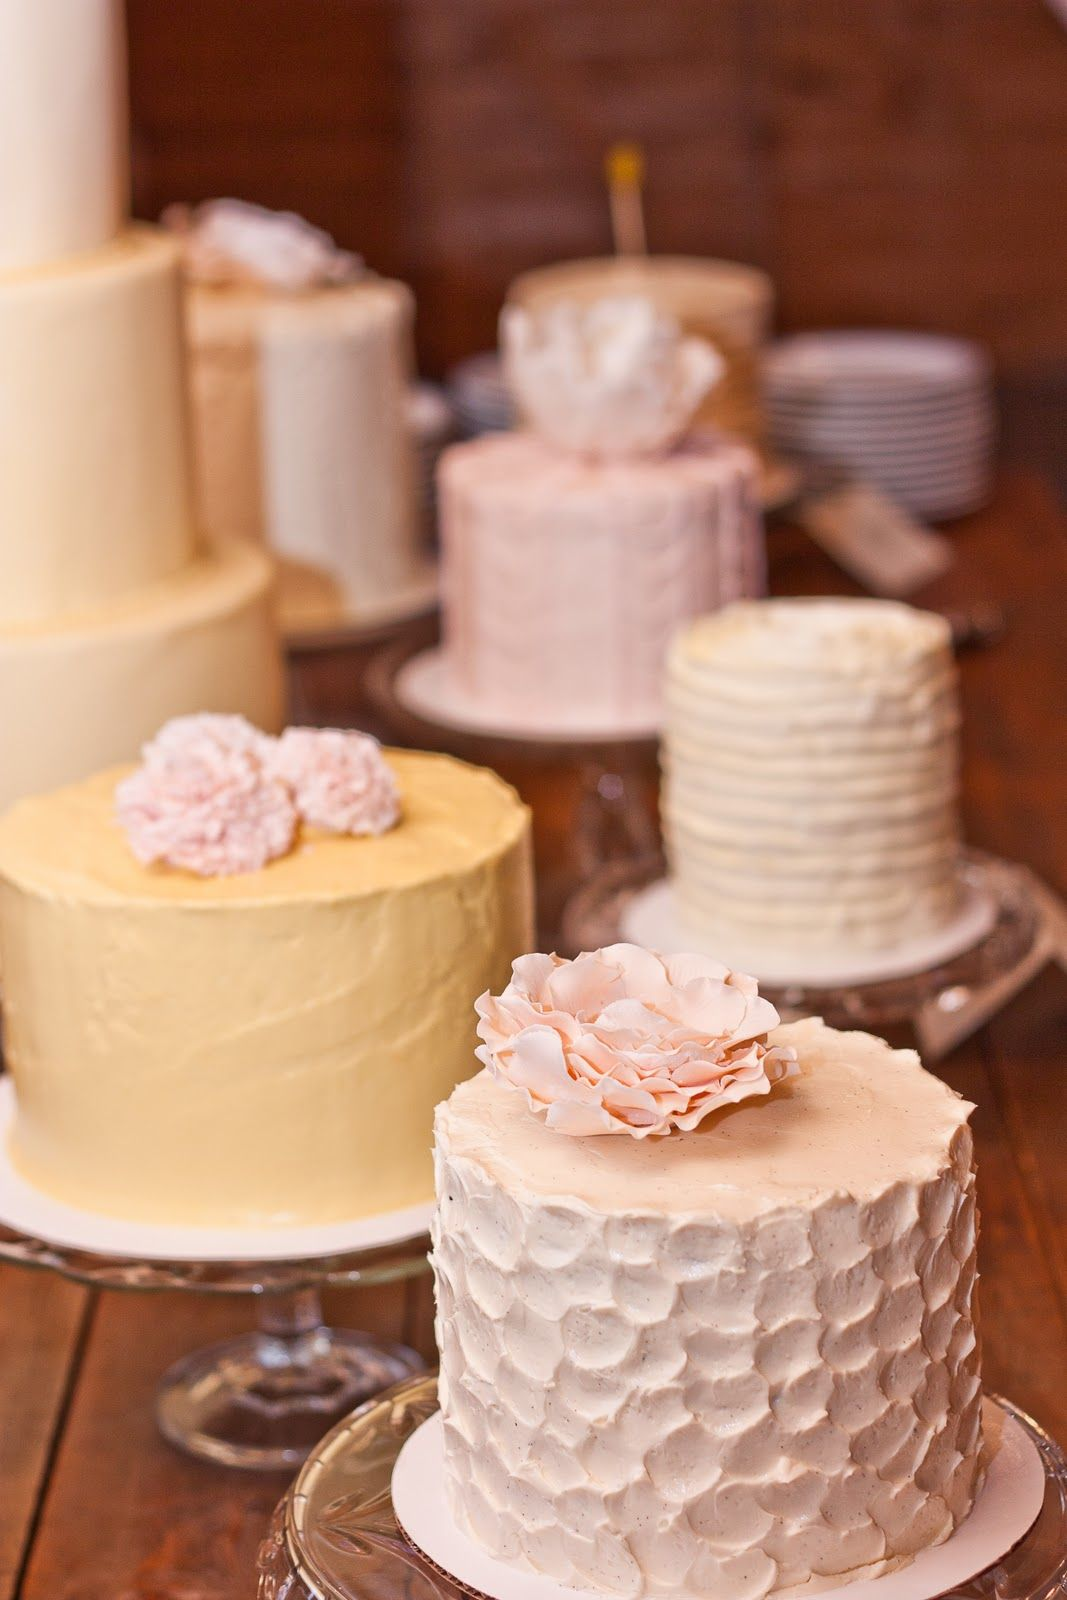 Love the idea of multiple wedding cakes in different